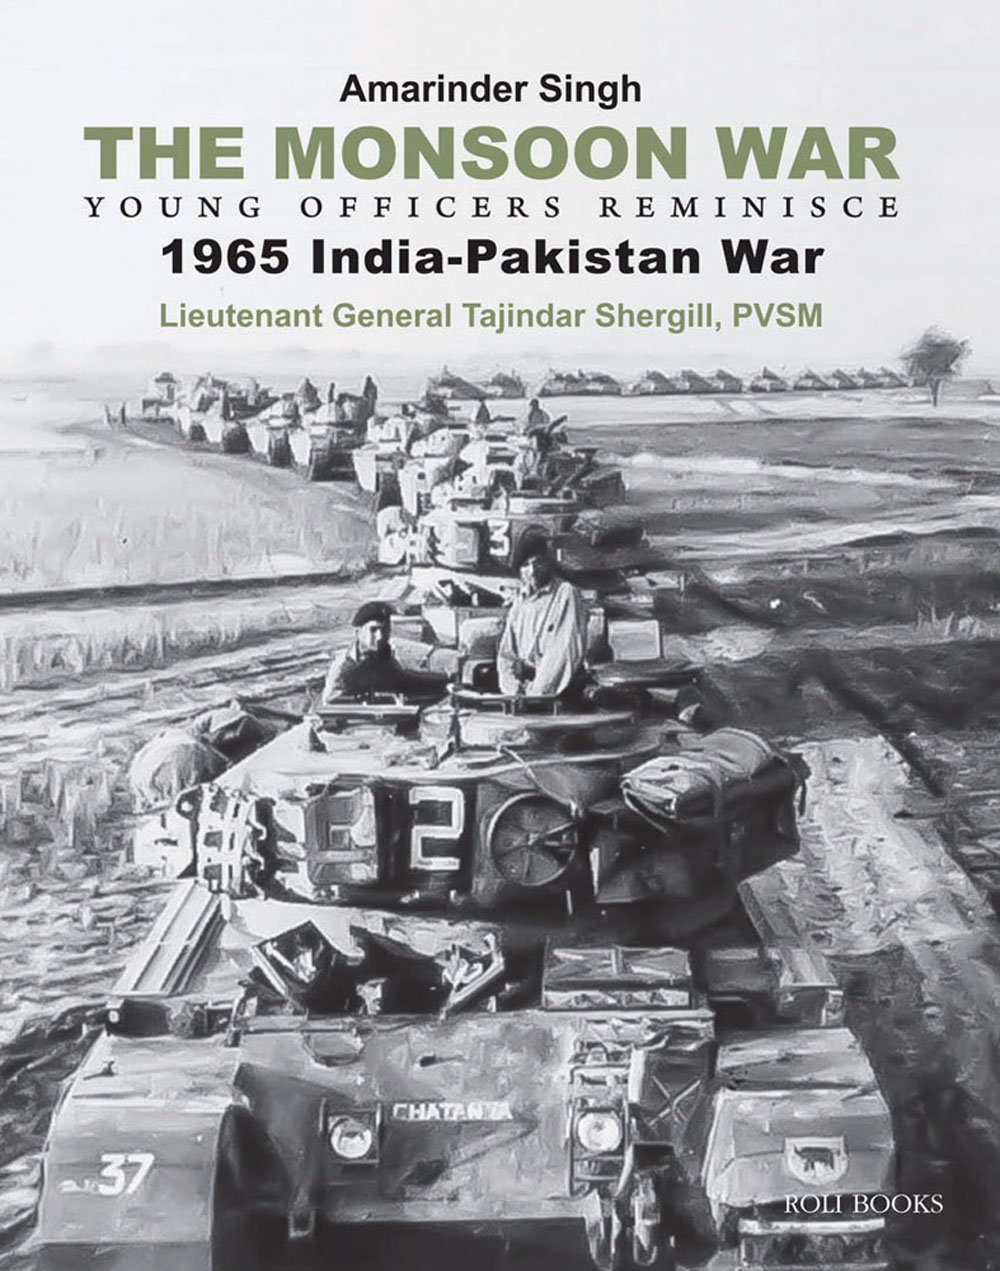 Buy The Monsoon War: Young Officers Reminisce - 1965 India